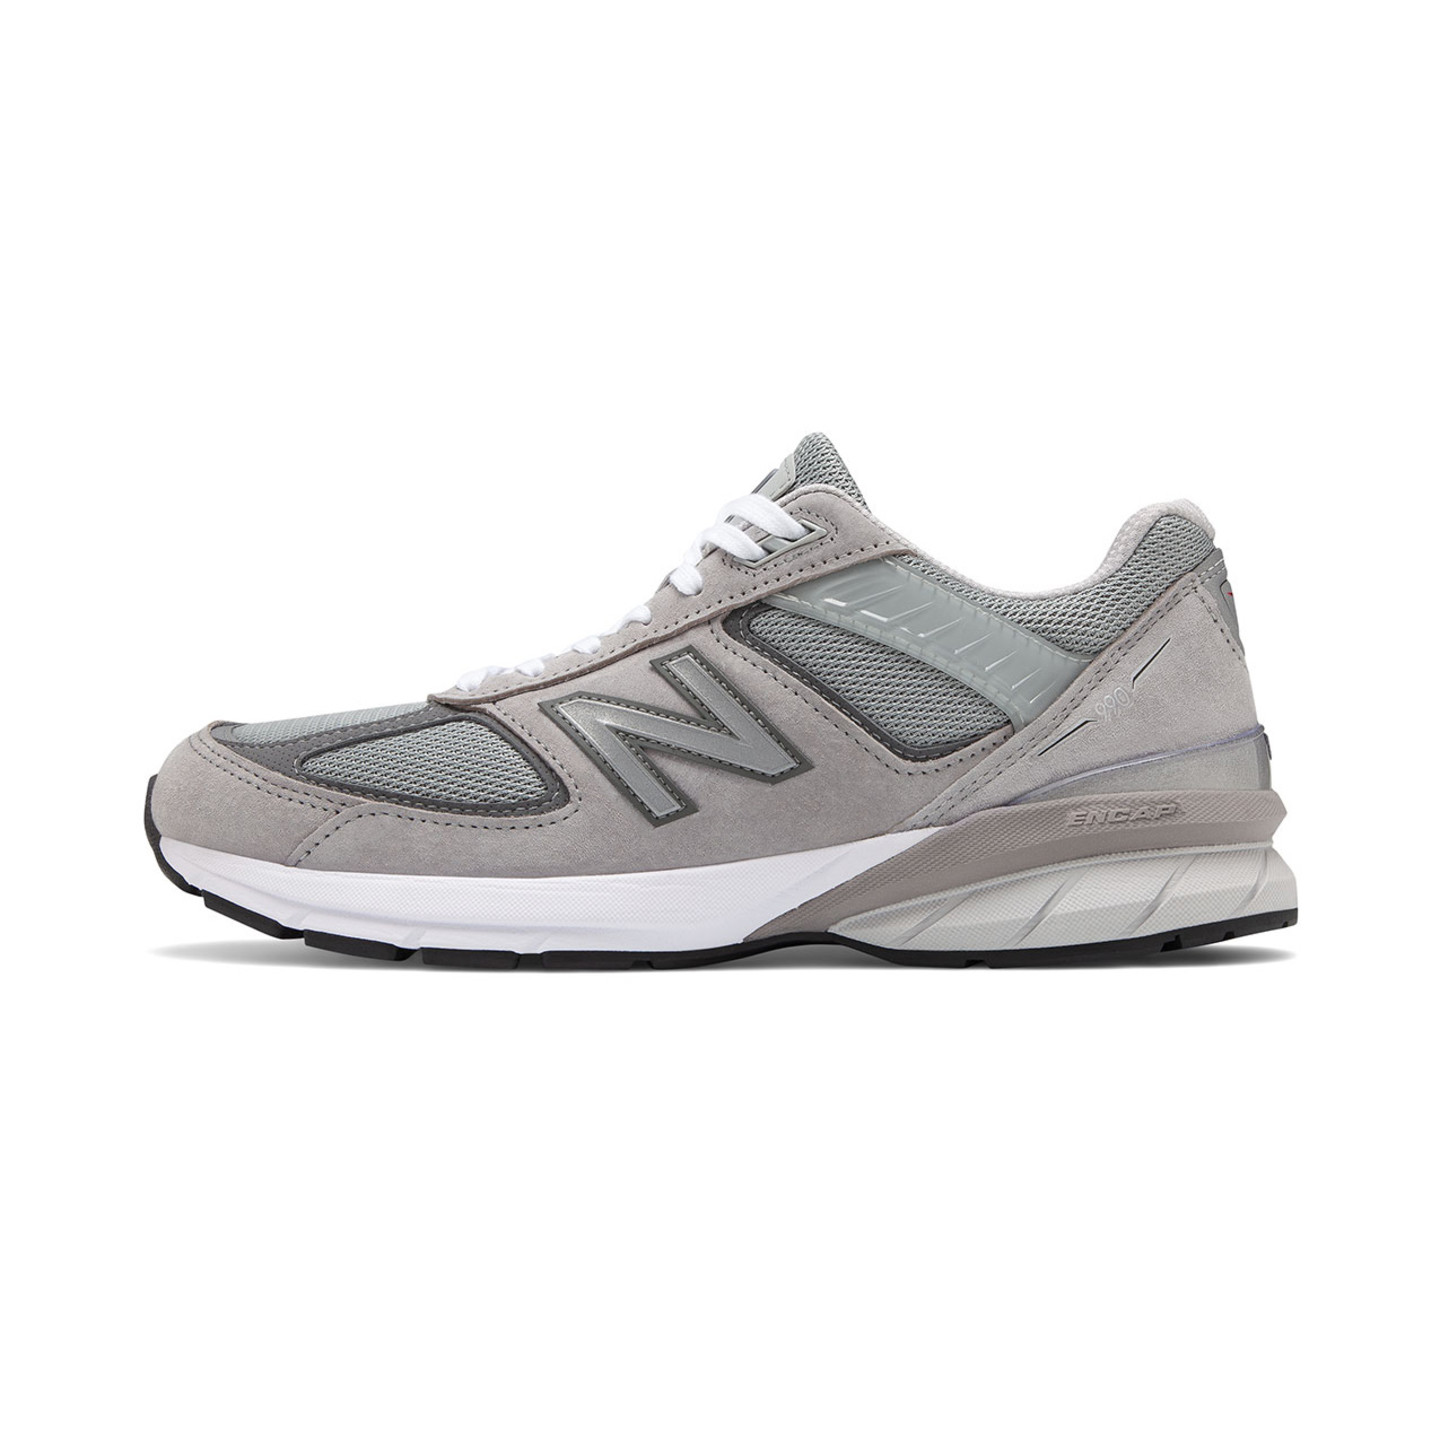 New Balance M990 V5 - Made in USA Grey / Castlerock M990GL5